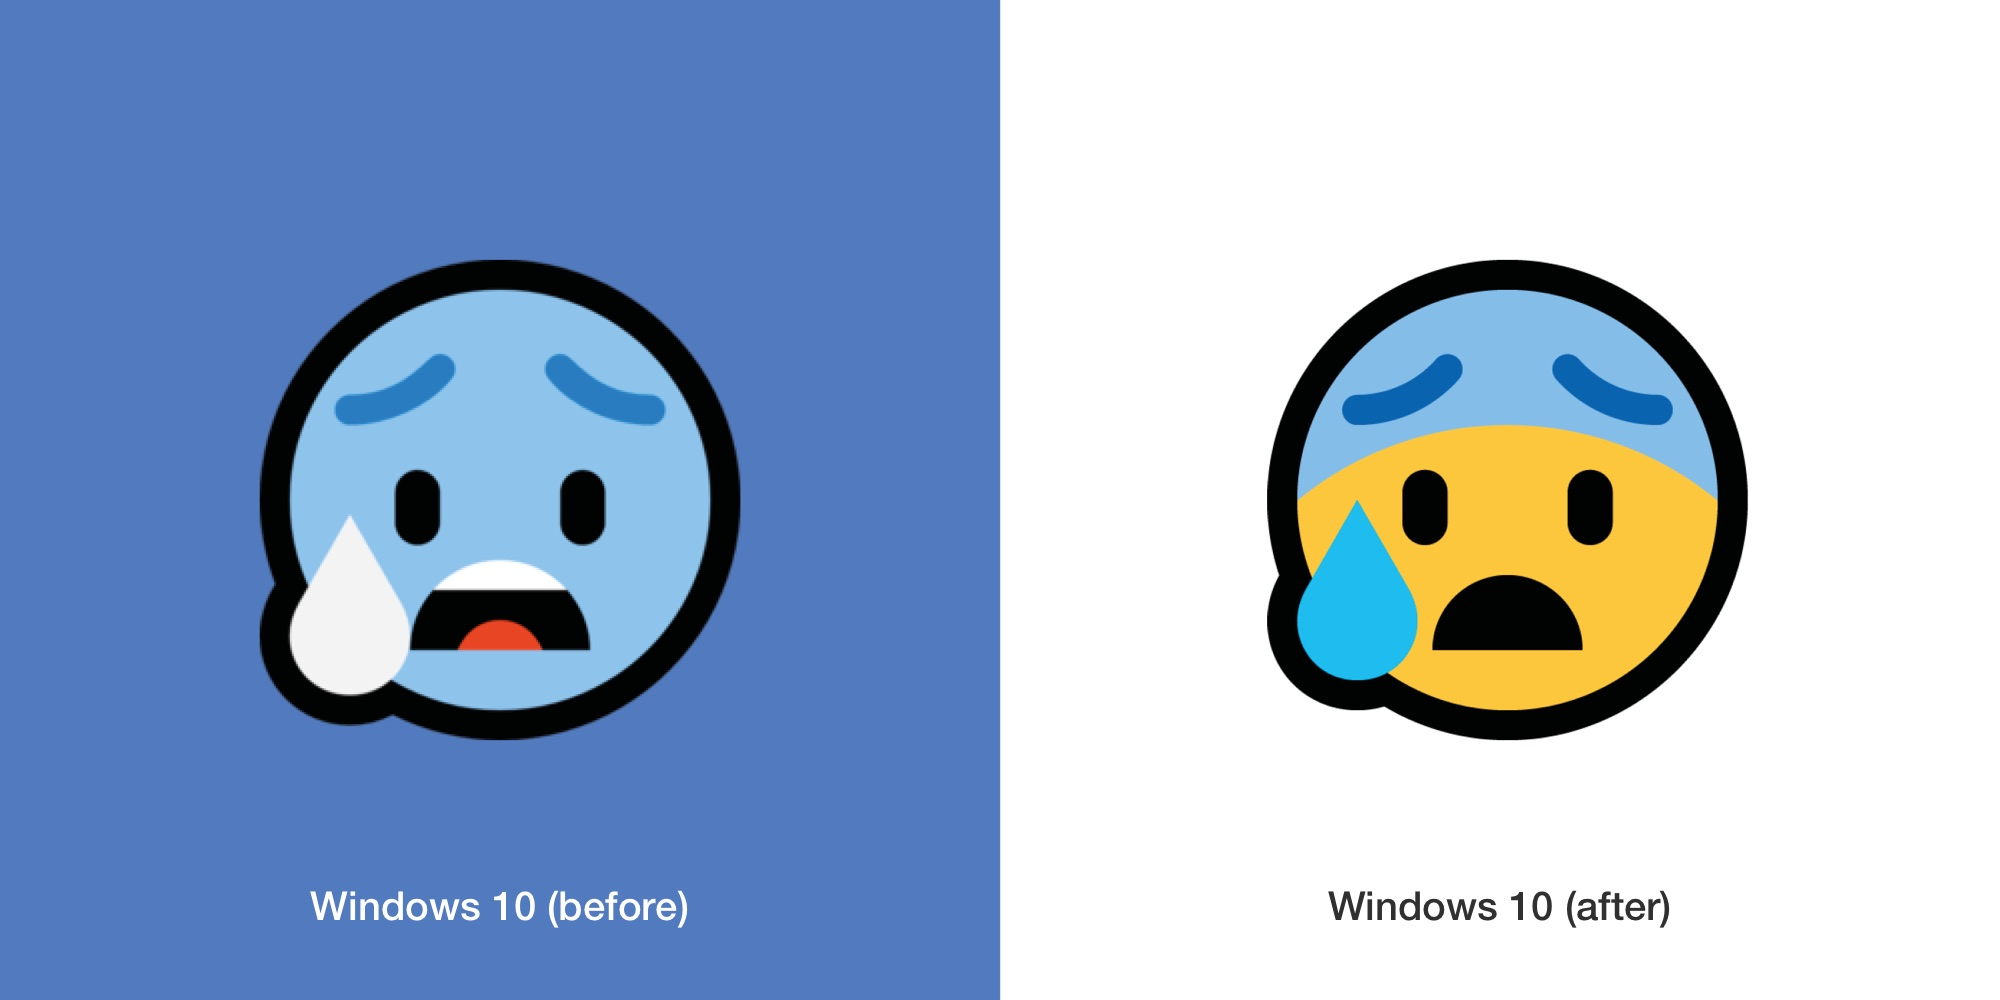 face-with-open-mouth-and-cold-sweat-emojipedia-windows10-april-2018-emojipedia